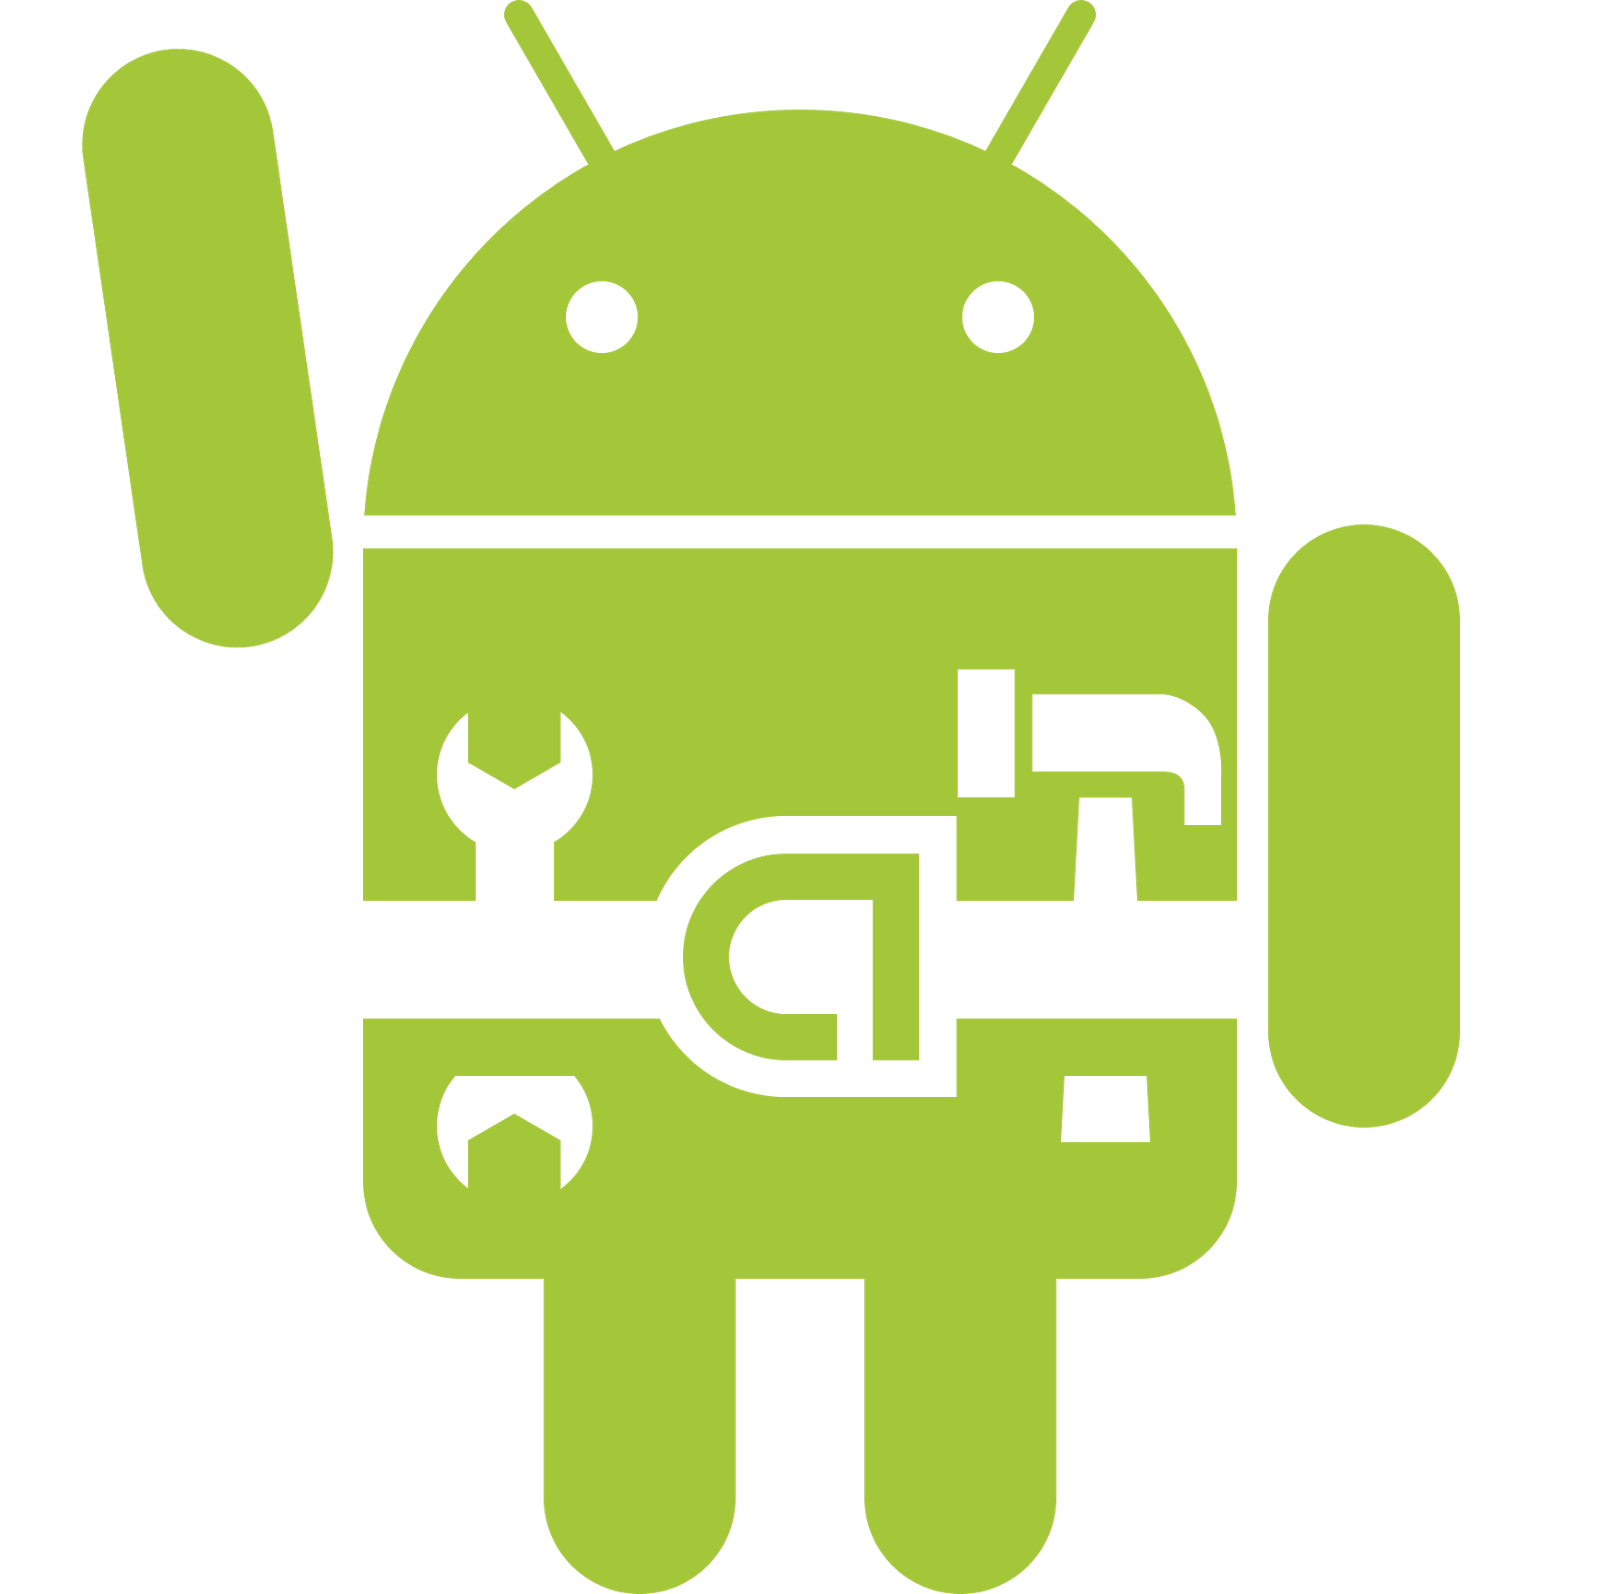 Best ways to fix. Android image png clipart stock